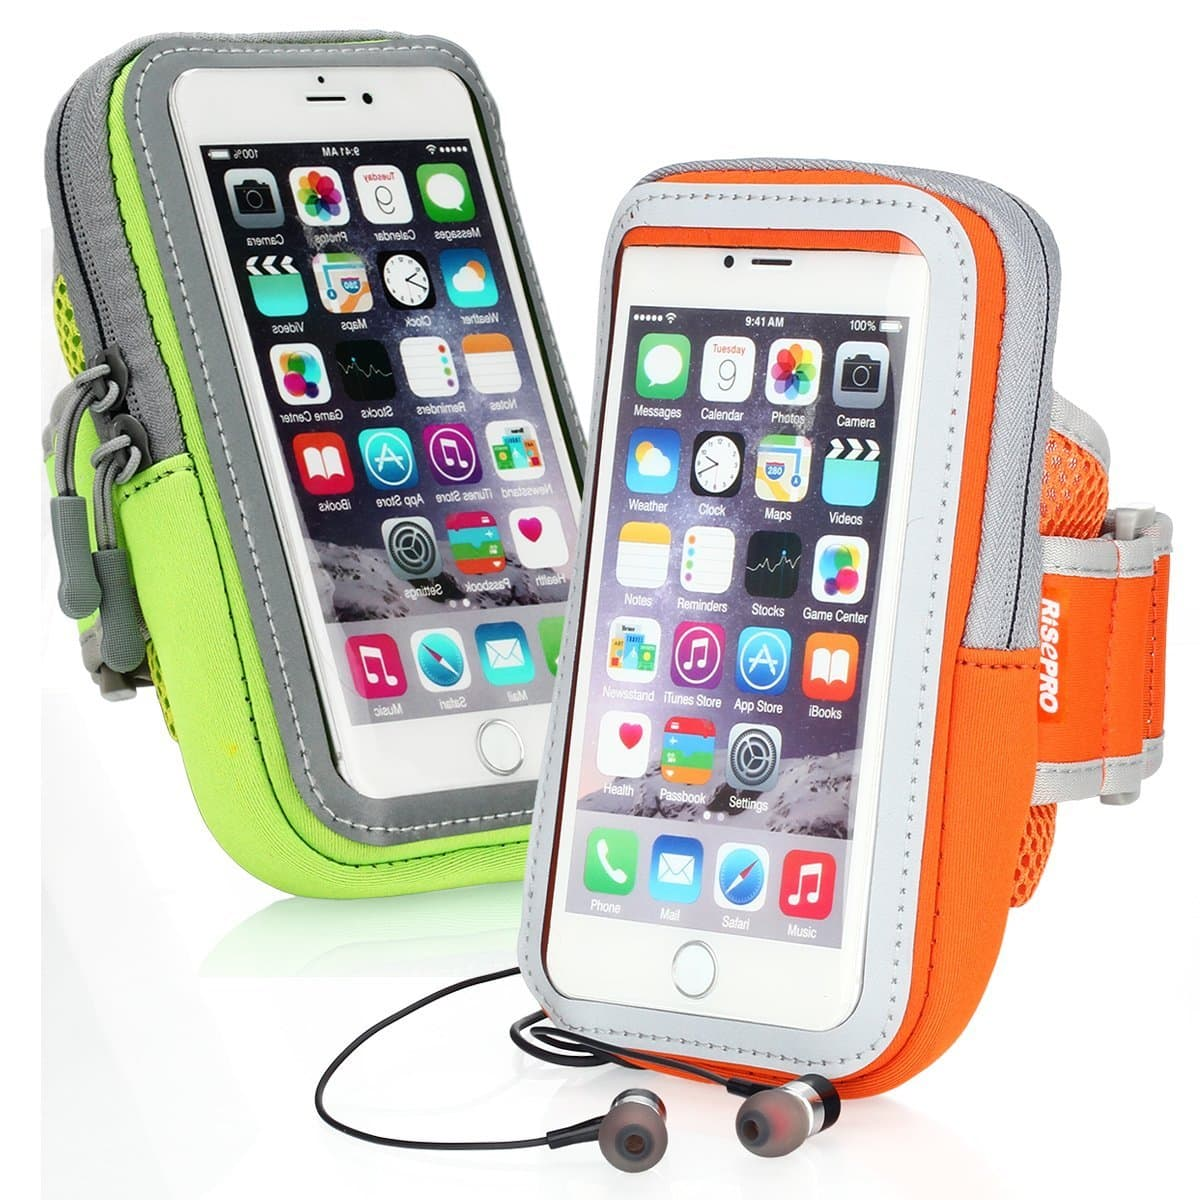 $3.90AC 2-PACK RISEPRO Card Holder, Jogging, Armbands Sports Multifunctional Pockets Outdoor for iphone 7, 7 plus, 6, 6S, 6plus, 5, 5s, 5c,Galaxy $3.86